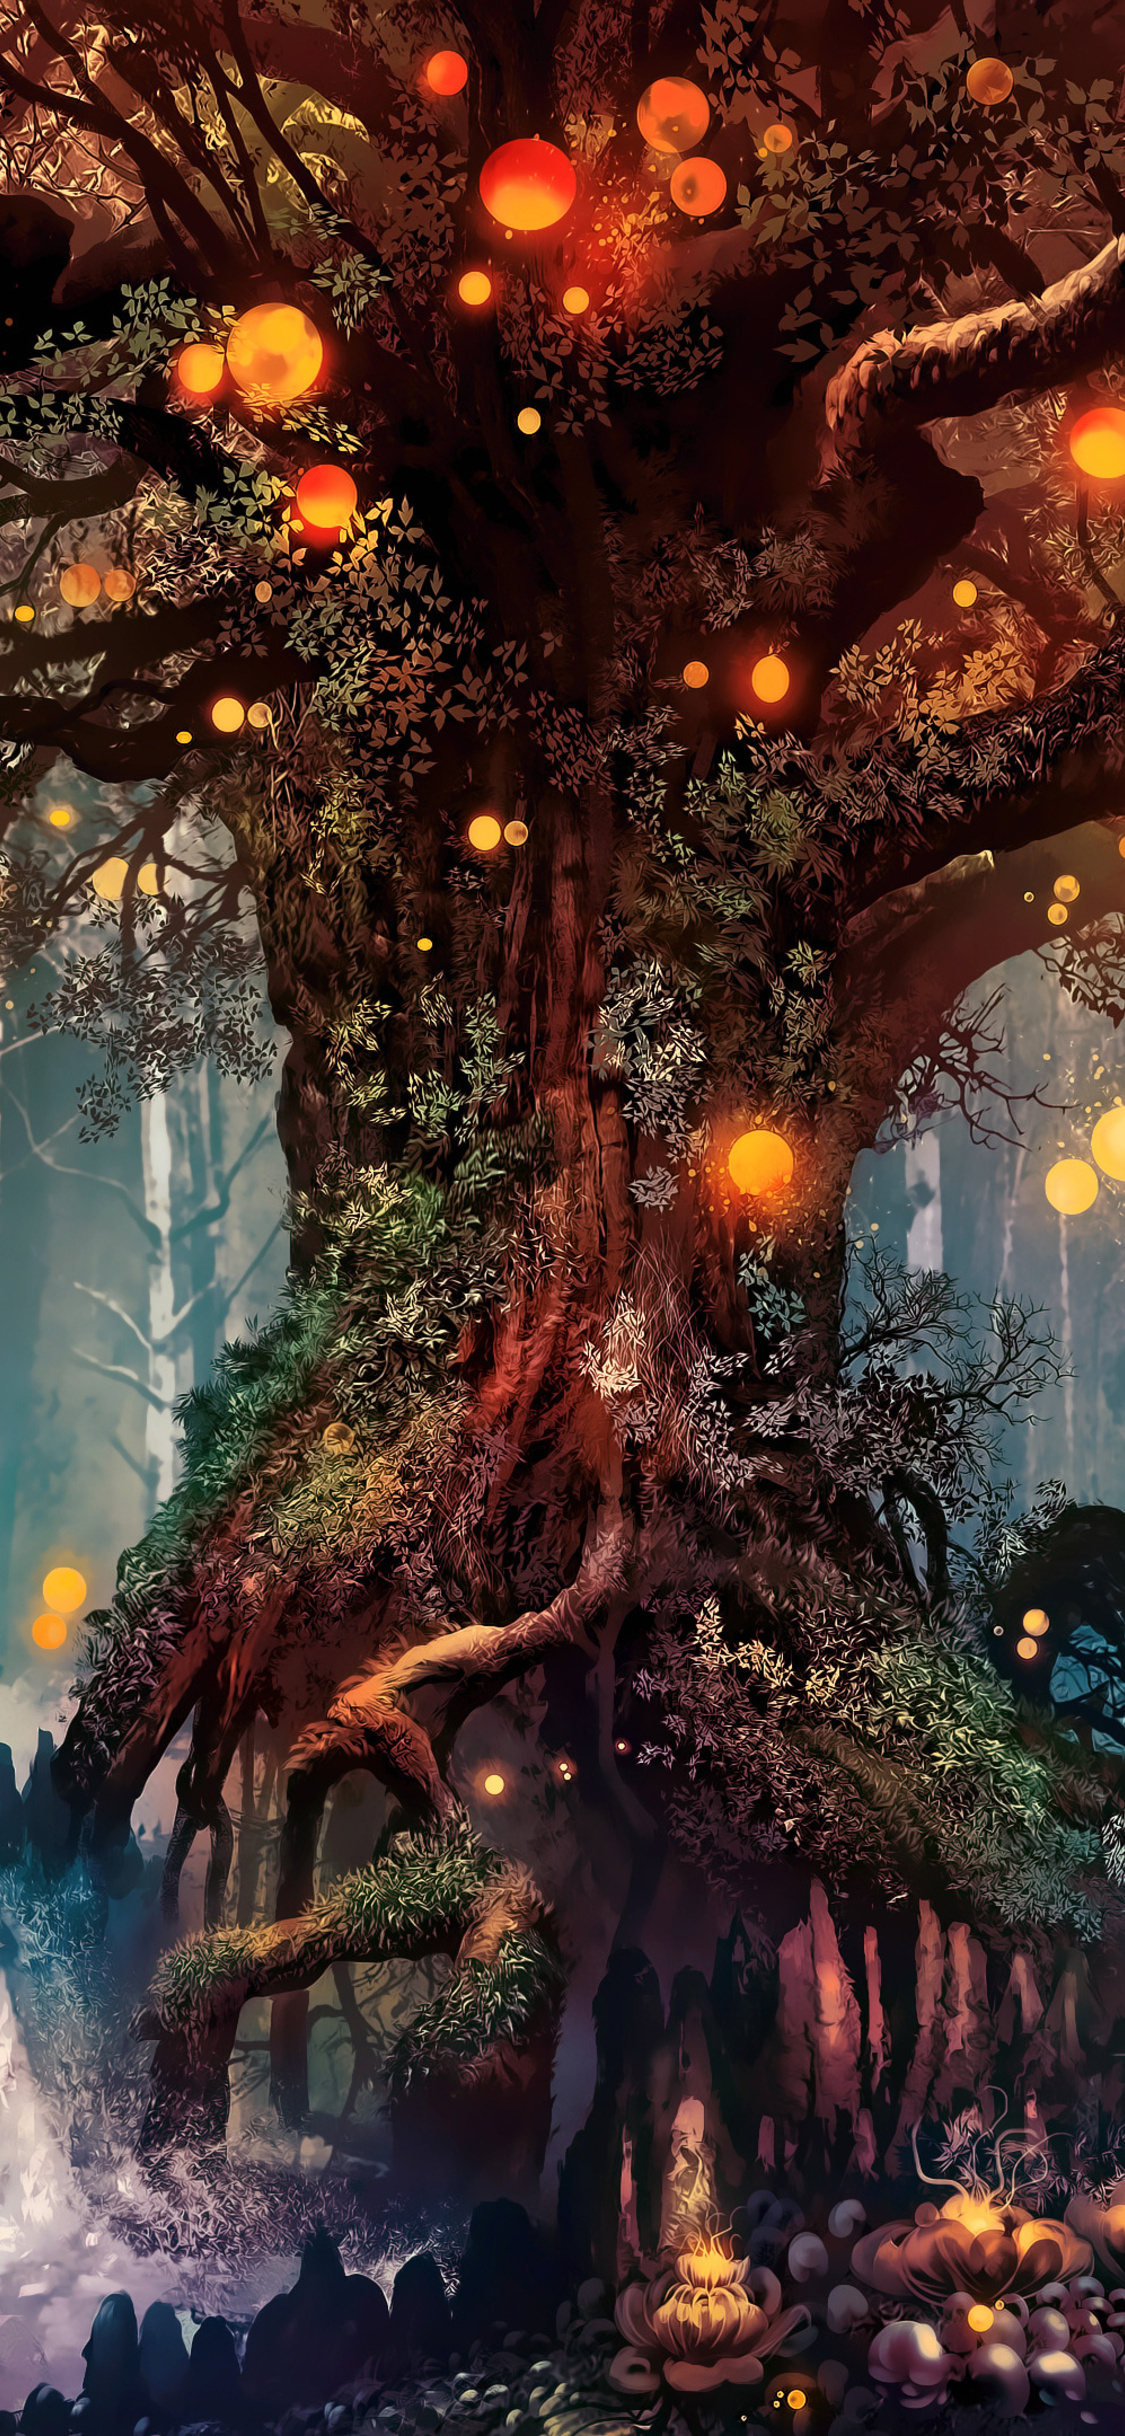 1125x2436 Forest Fantasy Artwork 4k Iphone XS,Iphone 10